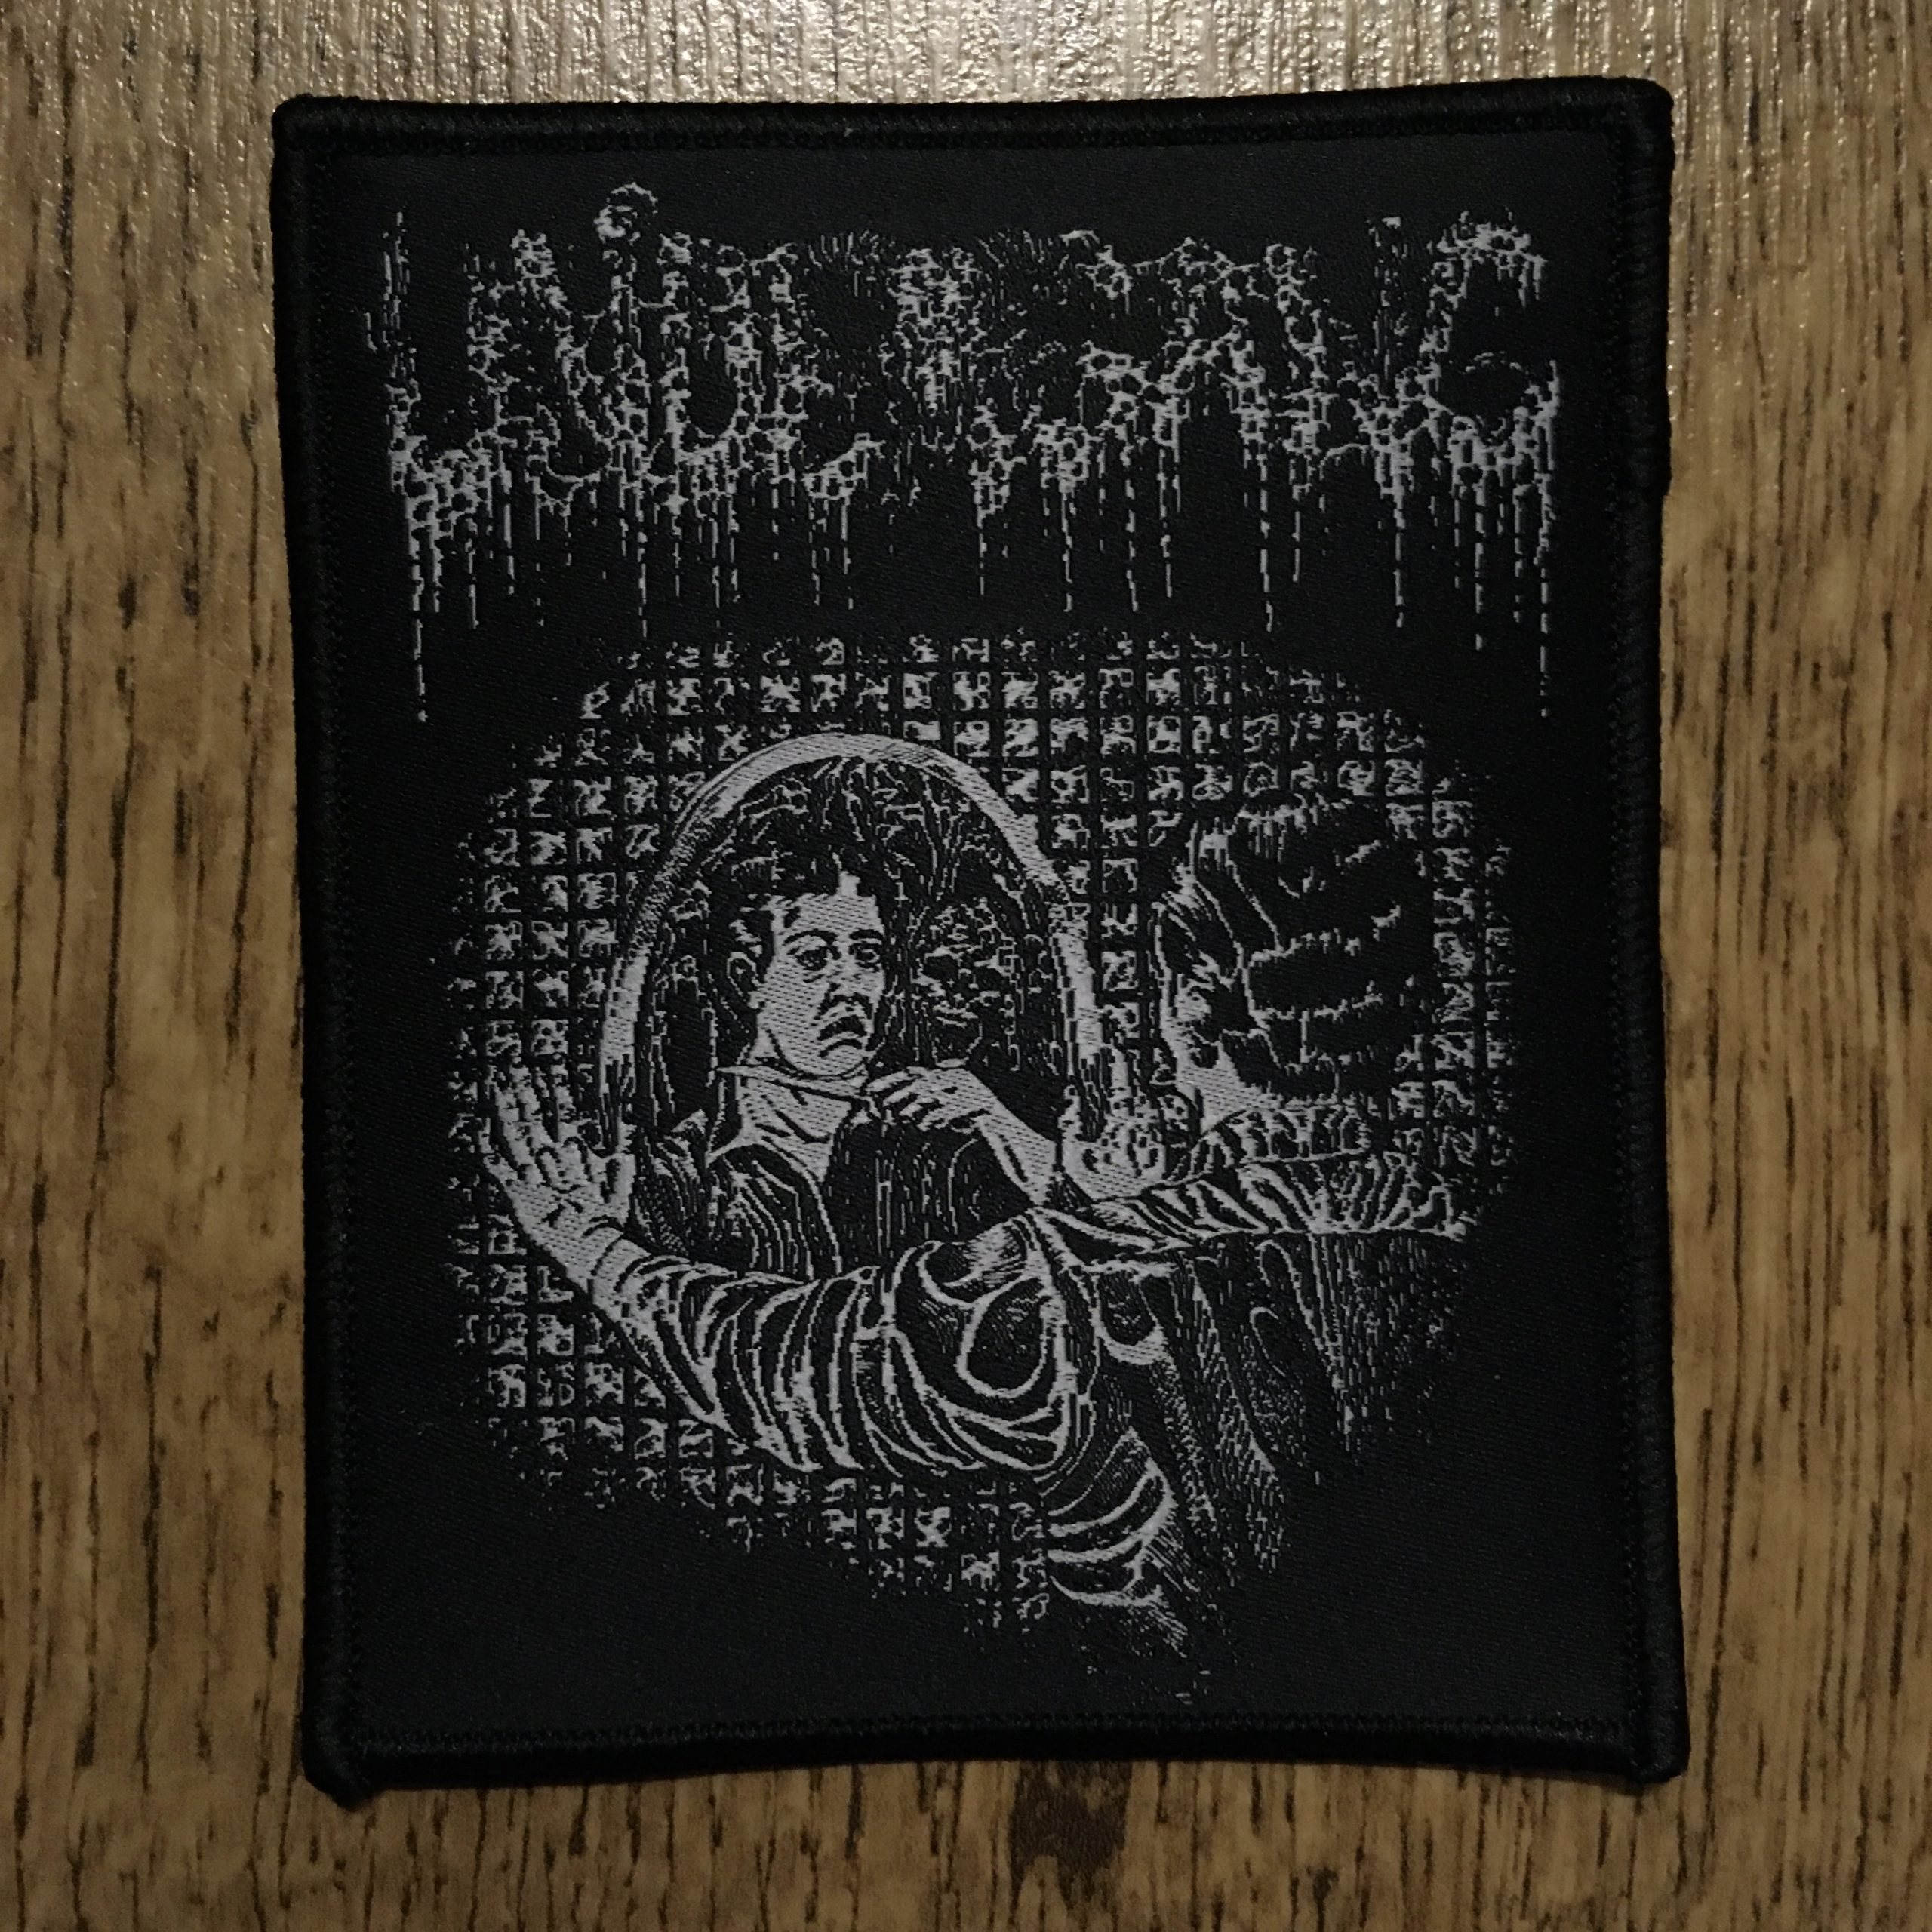 Photo of the Undergang -